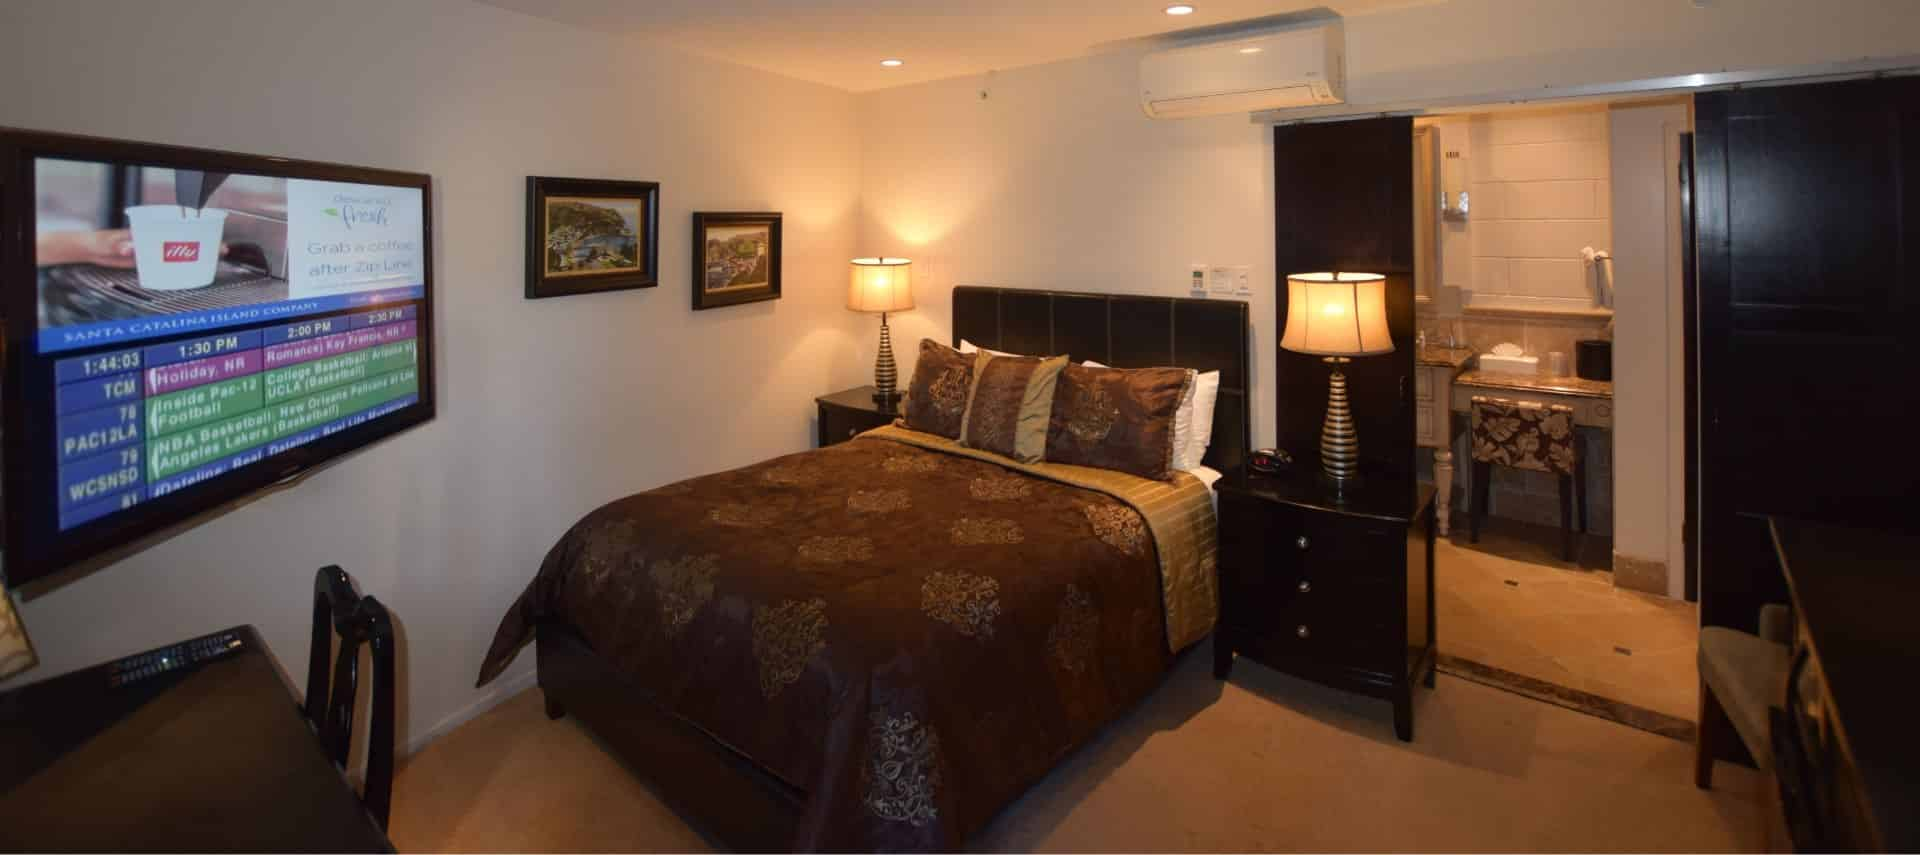 Dark wooden bed with brown and tan bedding, dark wood nightstands, and large flat-screen TV mounted on wall